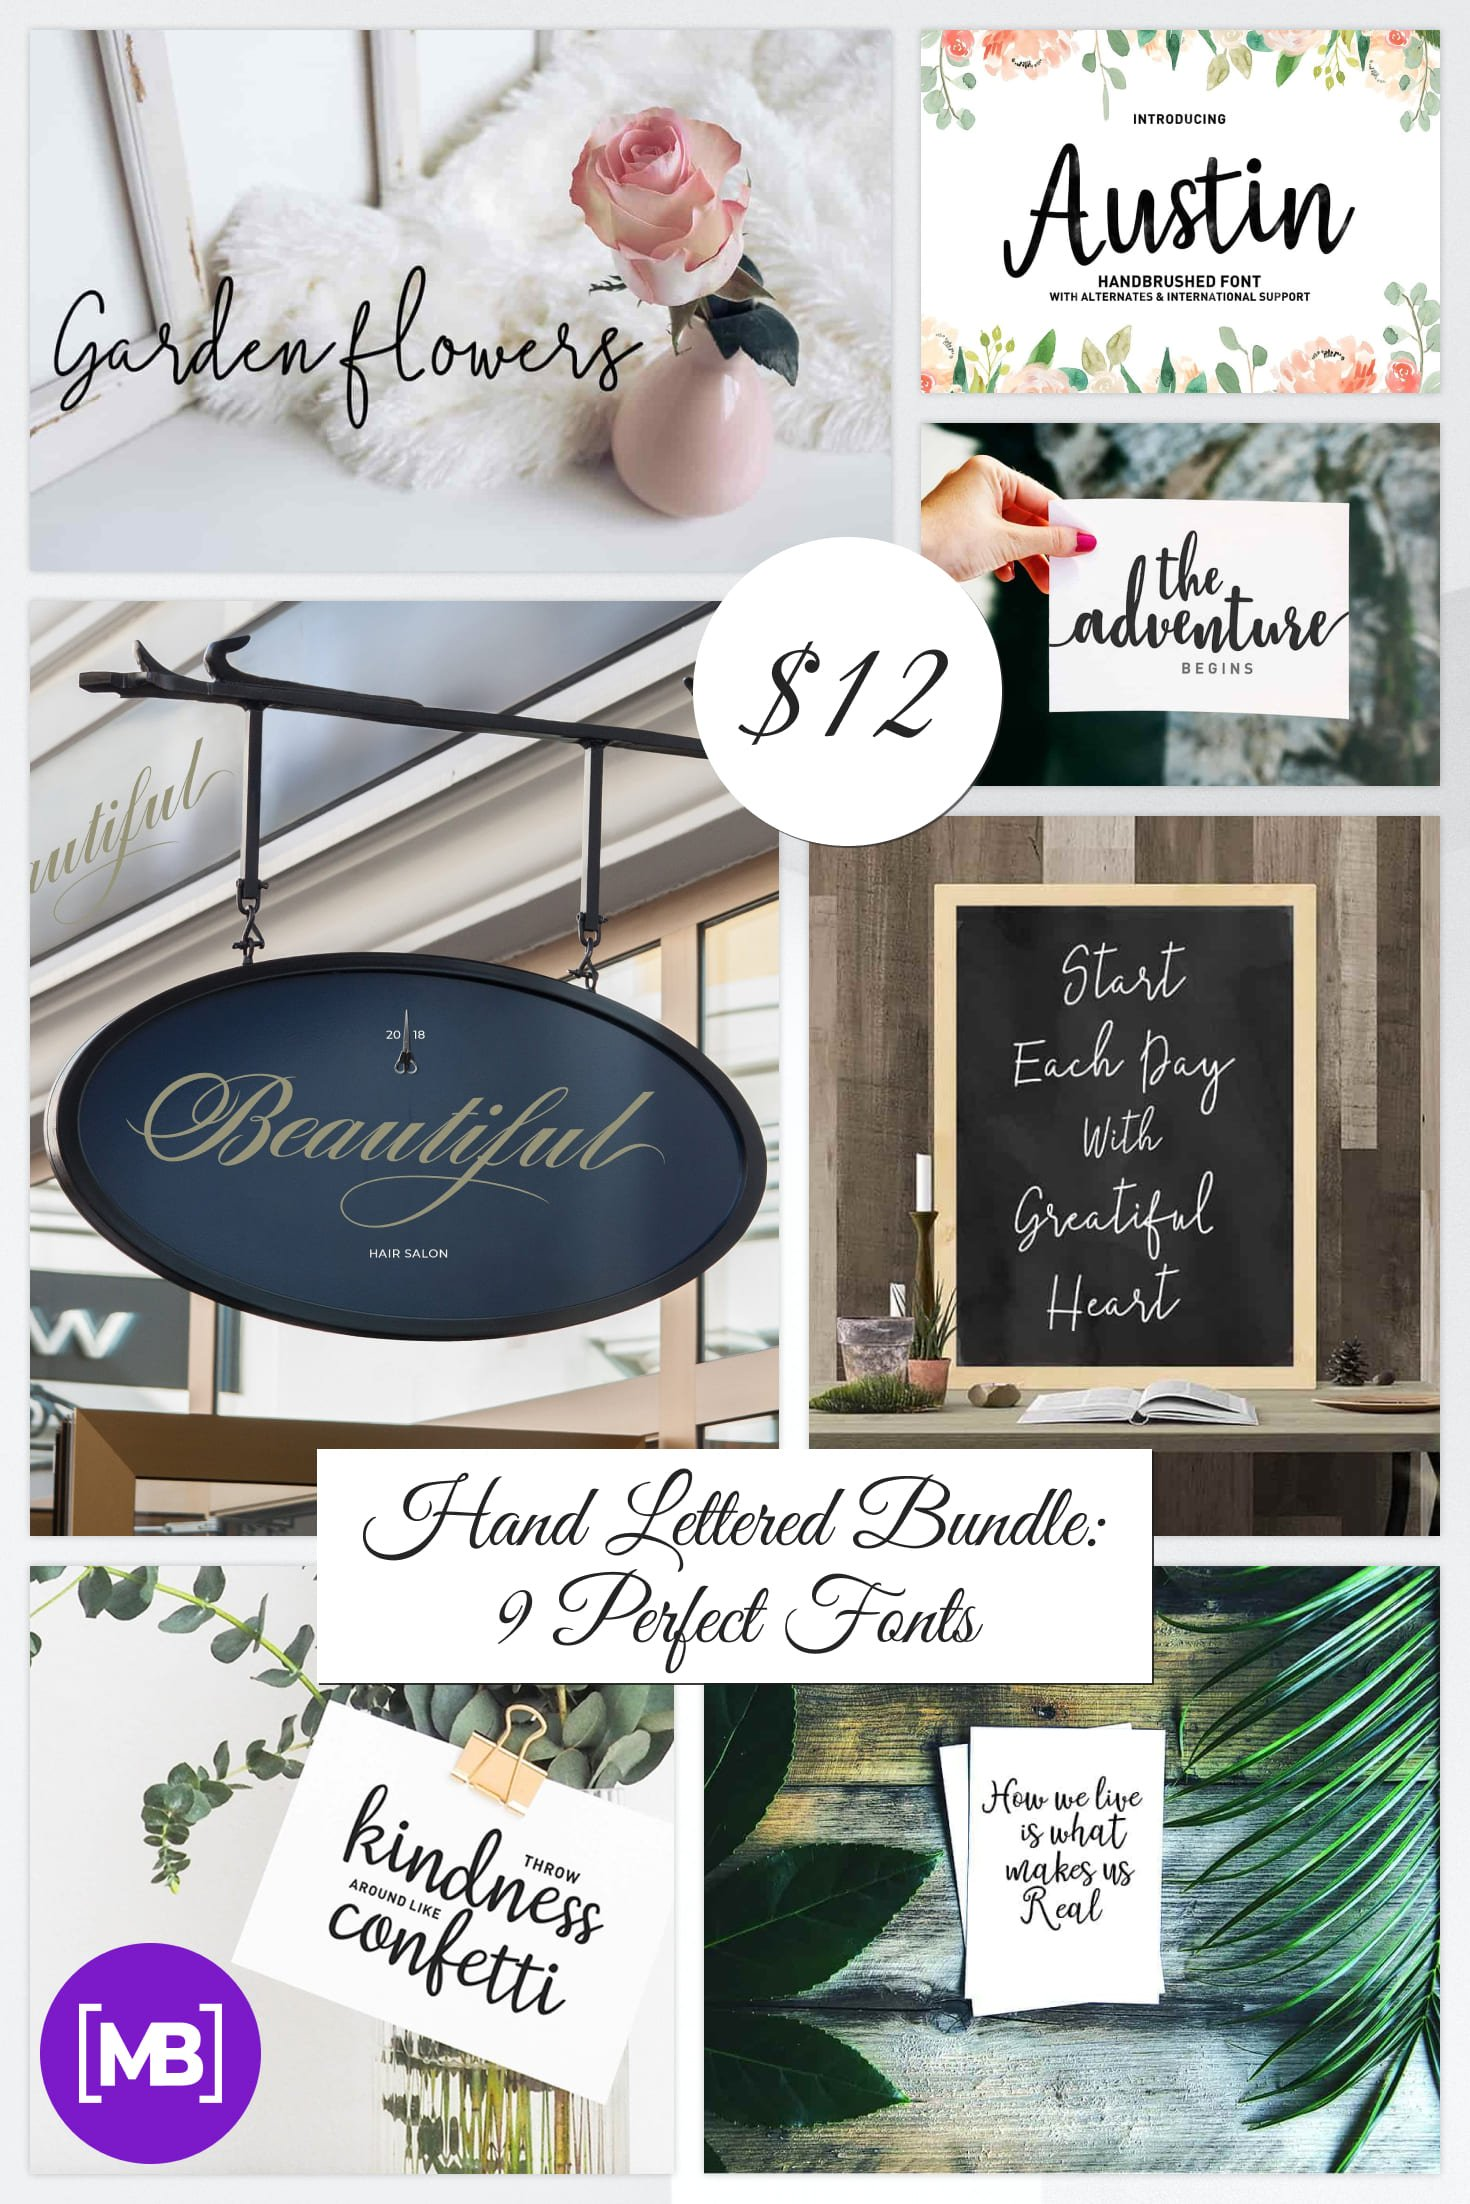 Hand Lettered Bundle: 9 Perfect Fonts - $12 ONLY. Collage Image.